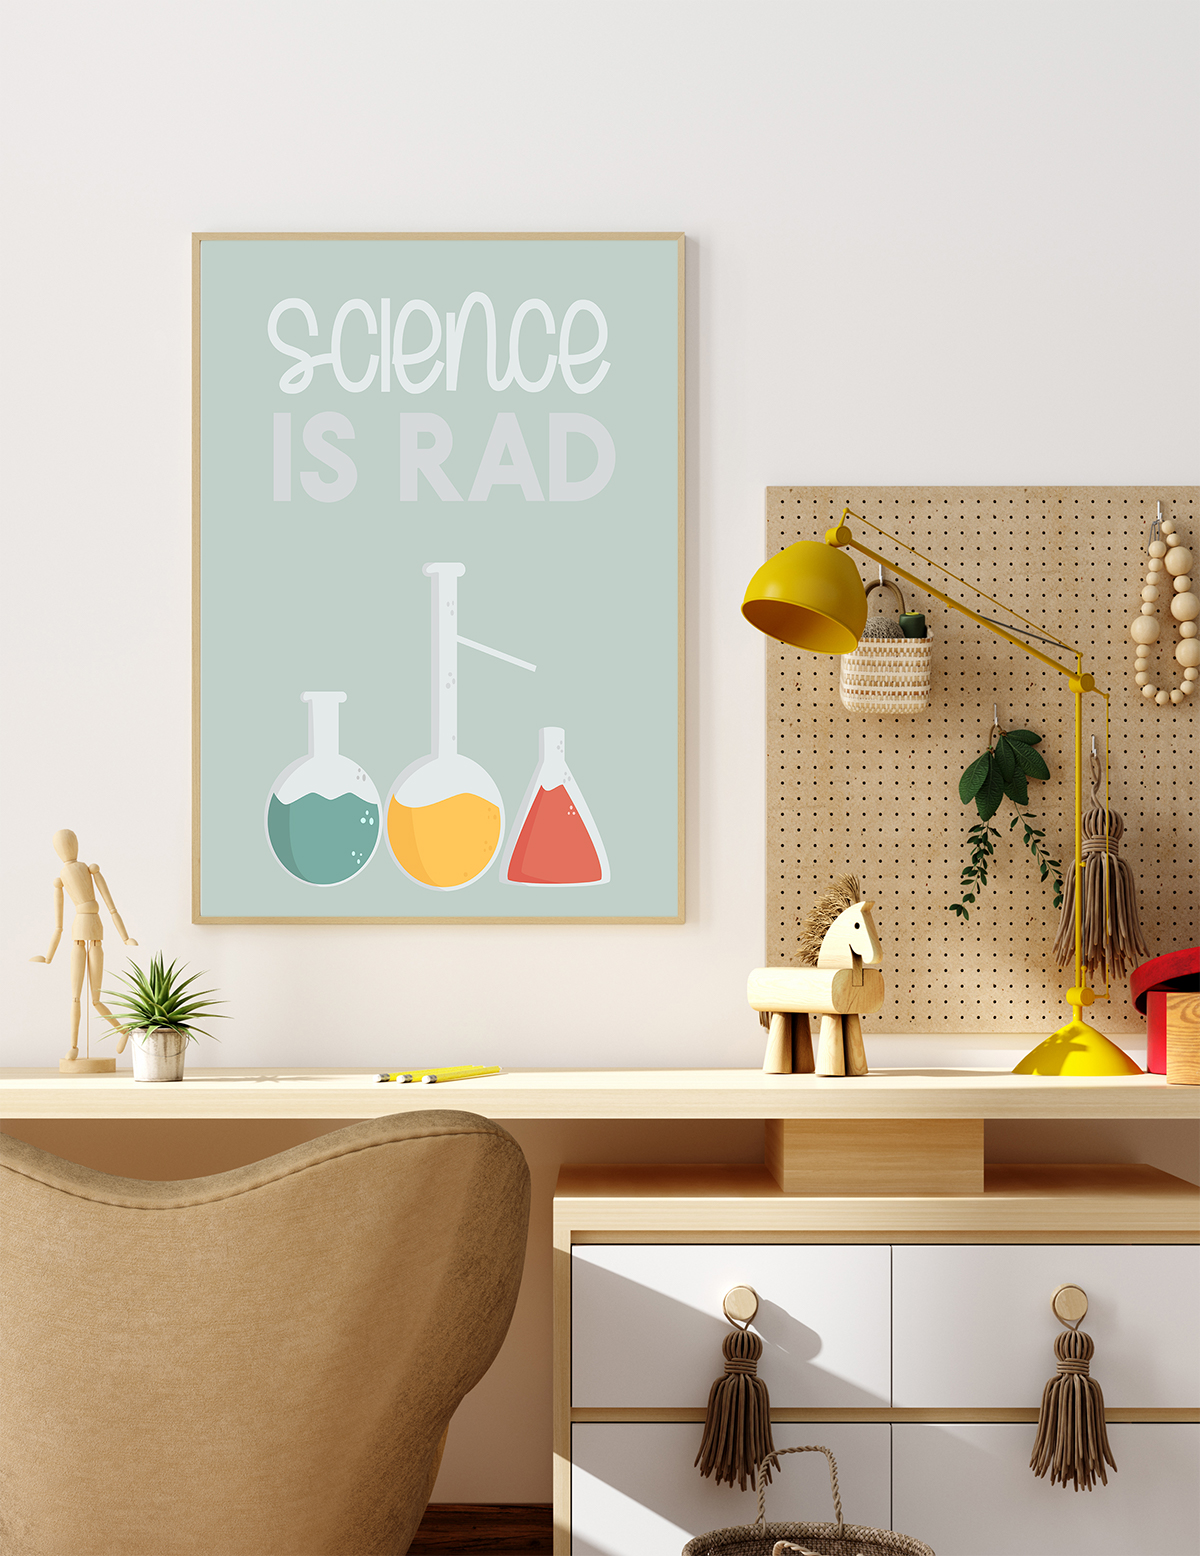 free science is rad poster printable